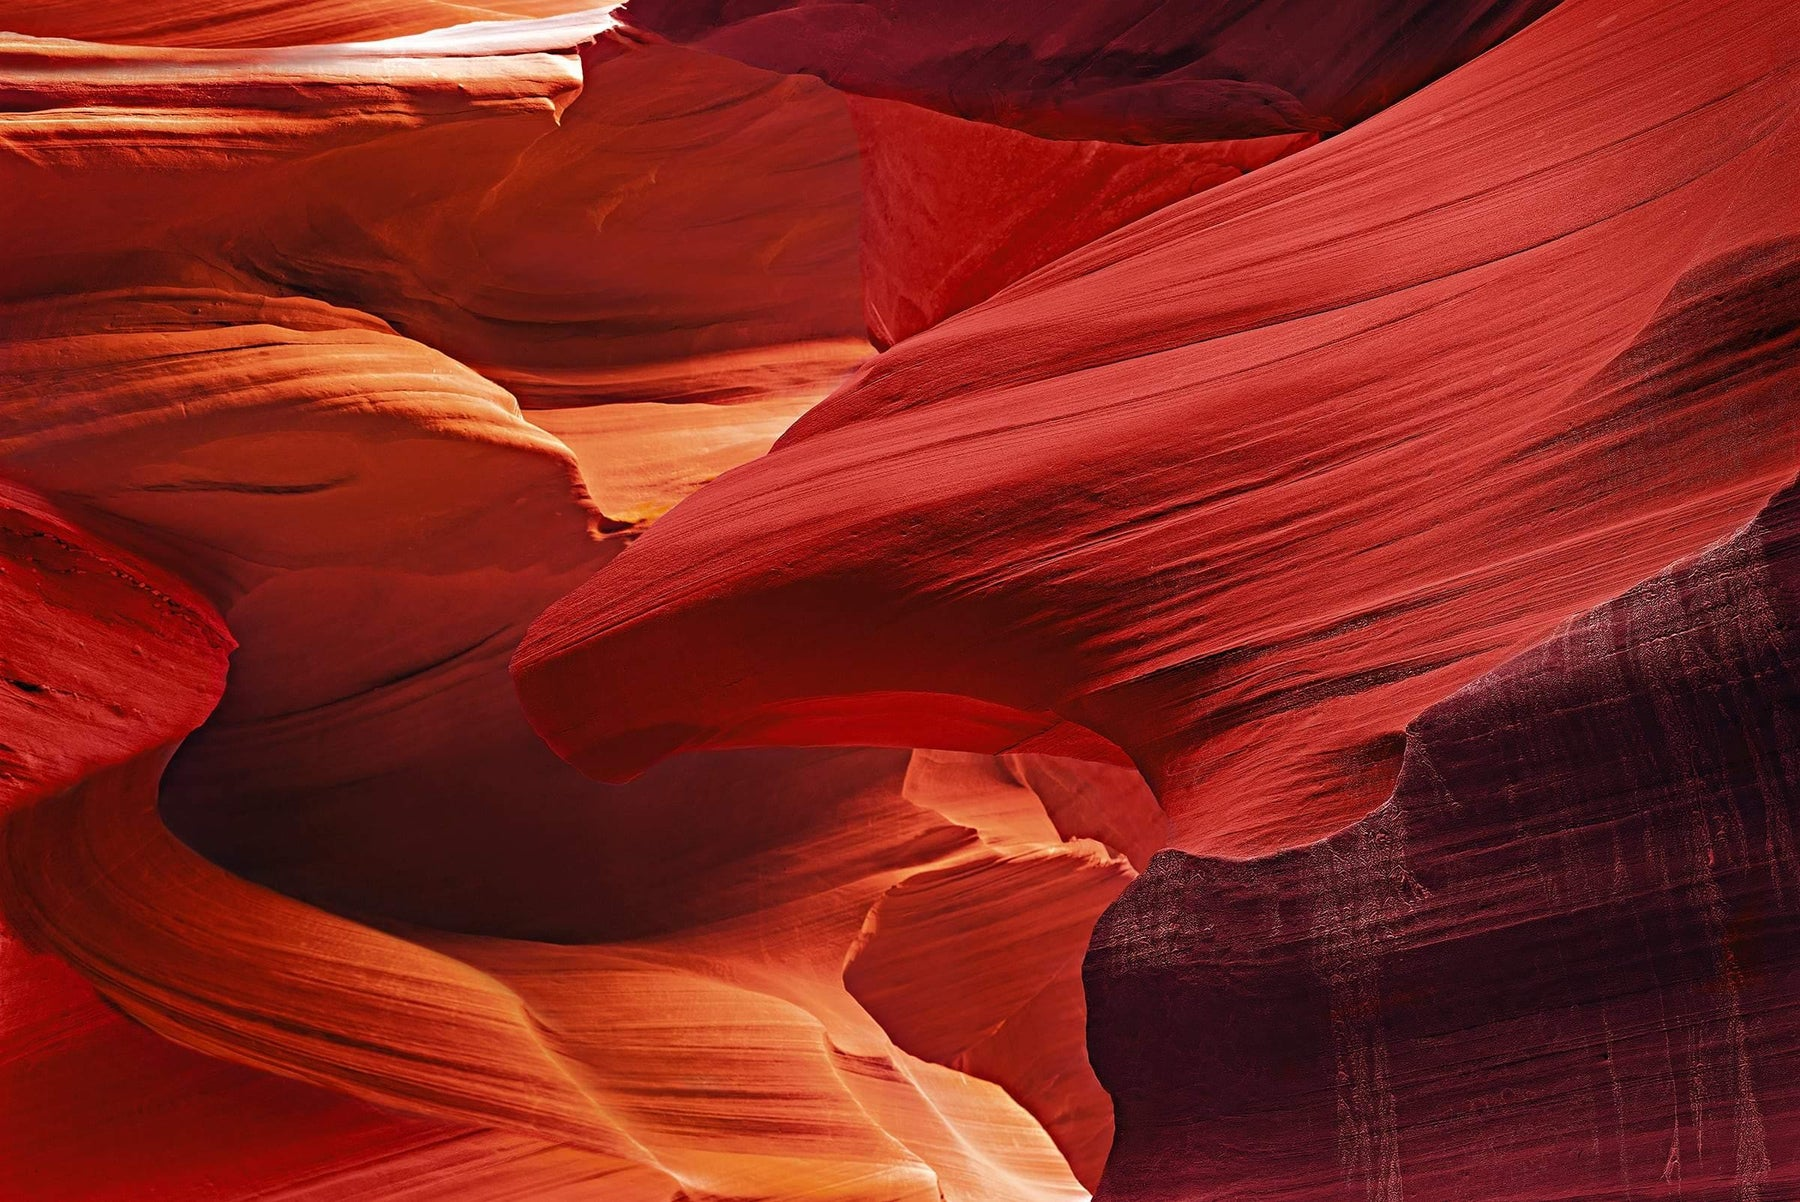 Red and orange eagle shaped sandstone wall within the slot canyons in Antelope Canyon Arizona